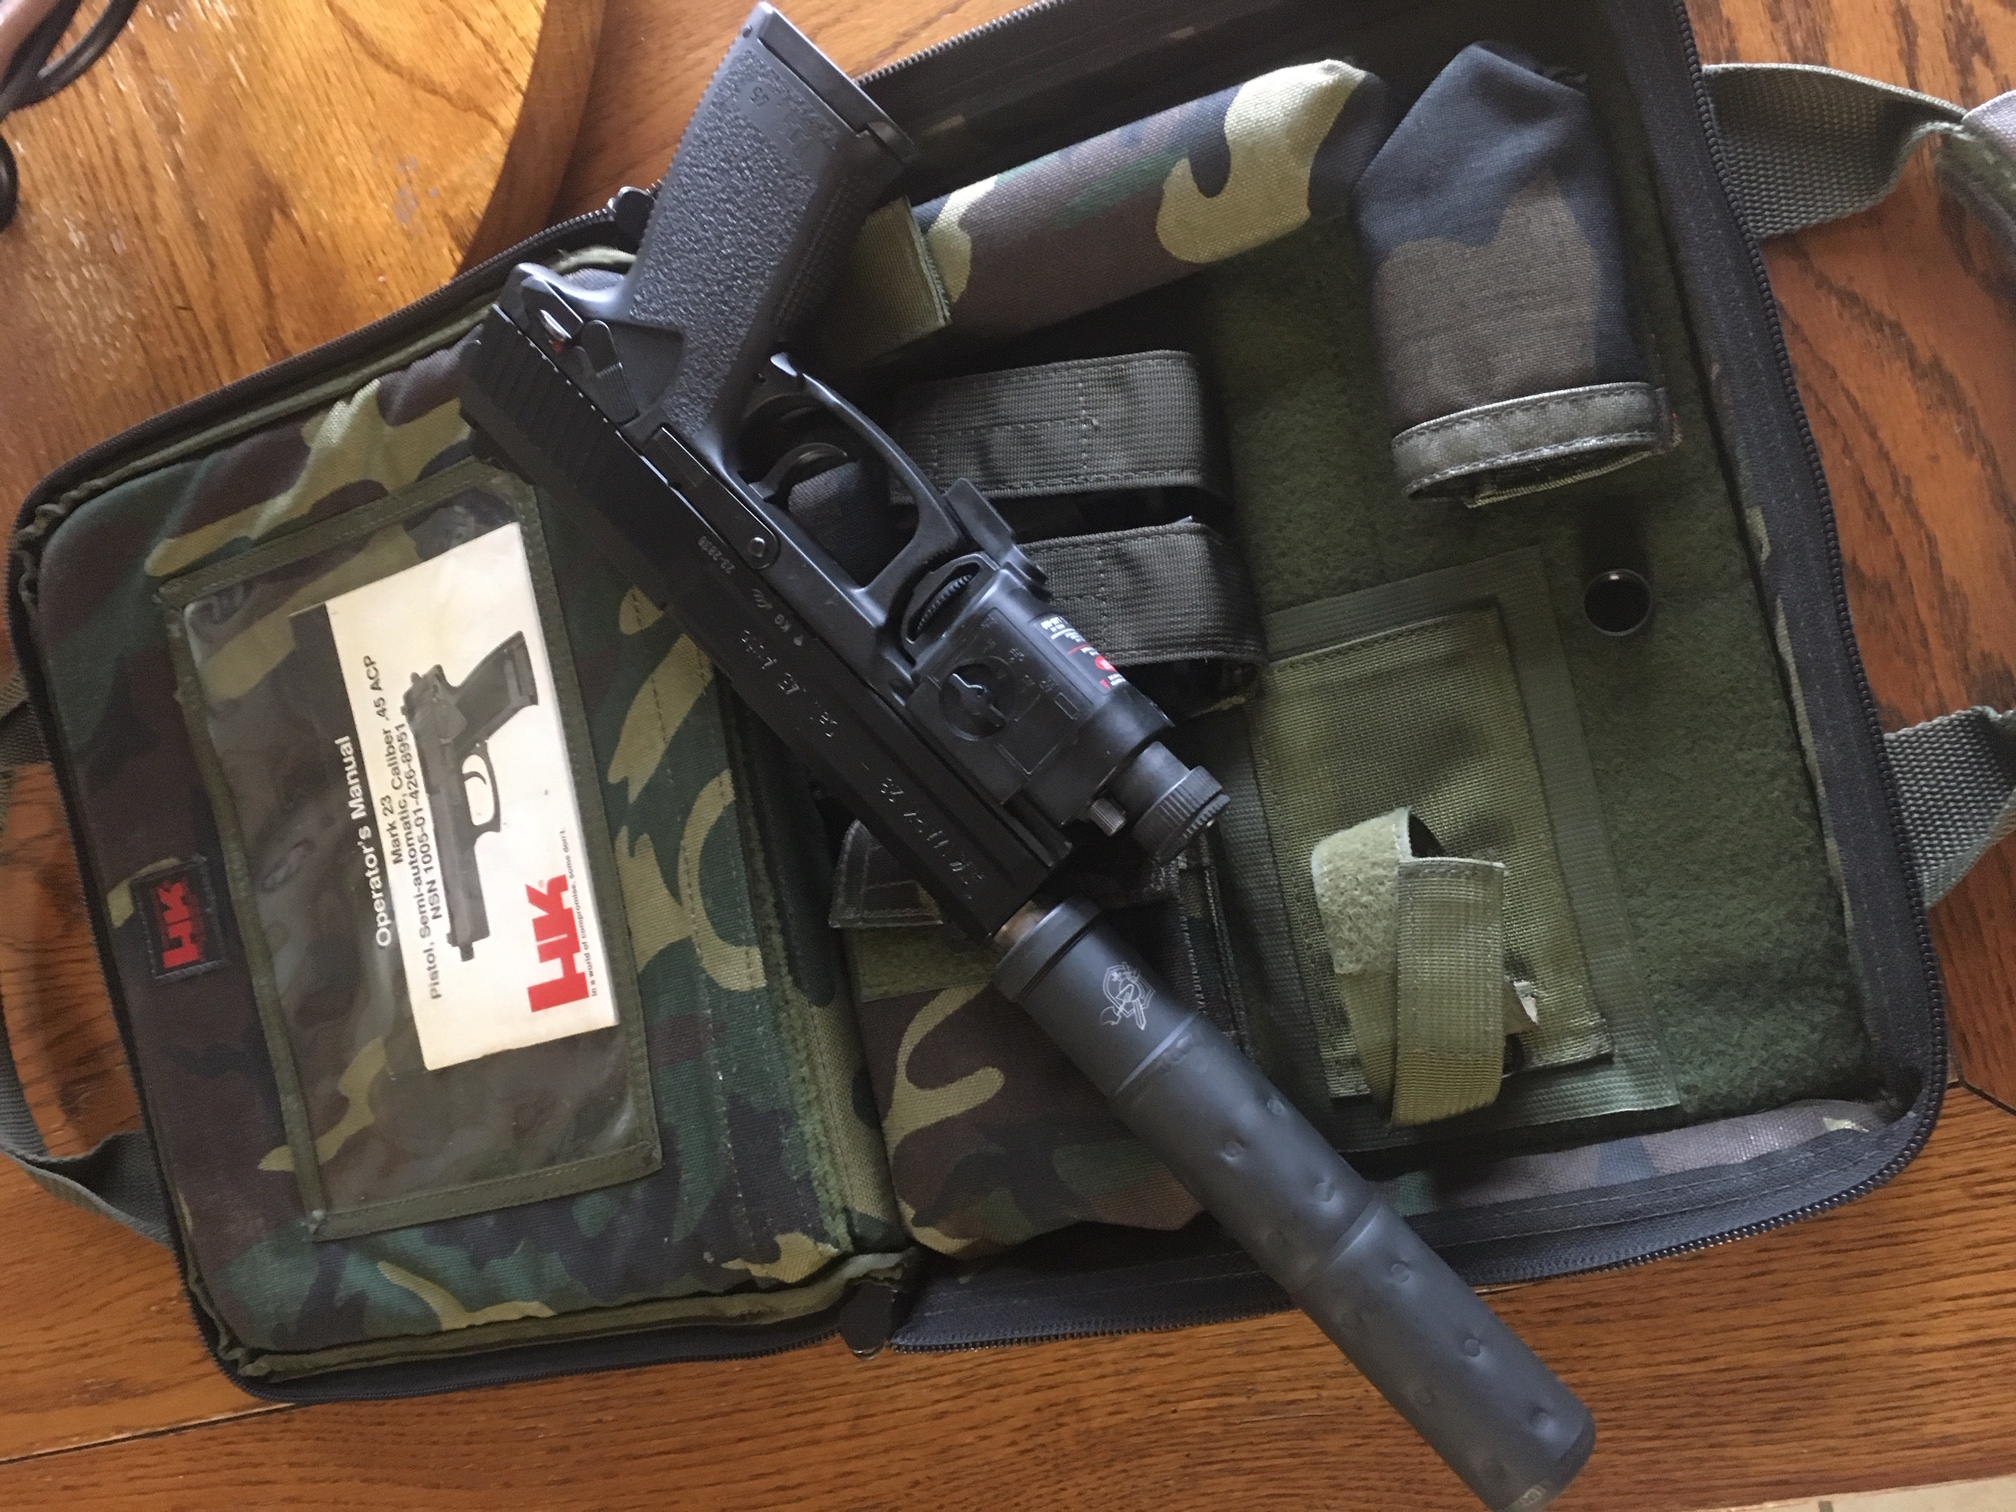 WTS: 1996 KG MARK 23 pistol, camo case, KAC suppressor and LAM package-img_4523.jpg